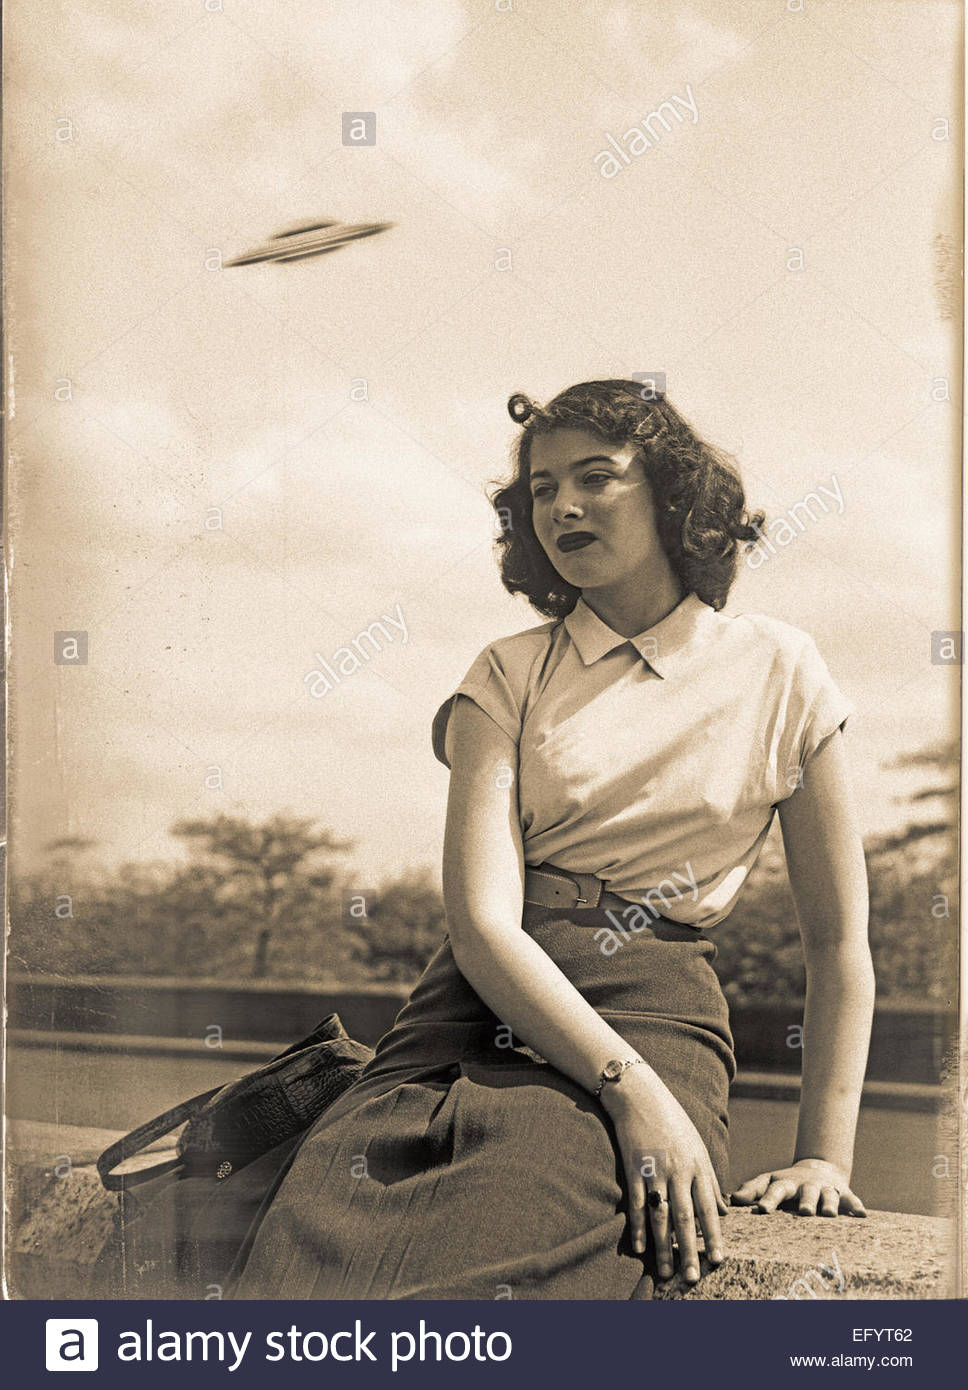 Vintage UFO snapshot of girl with flying saucer in background - Stock Image